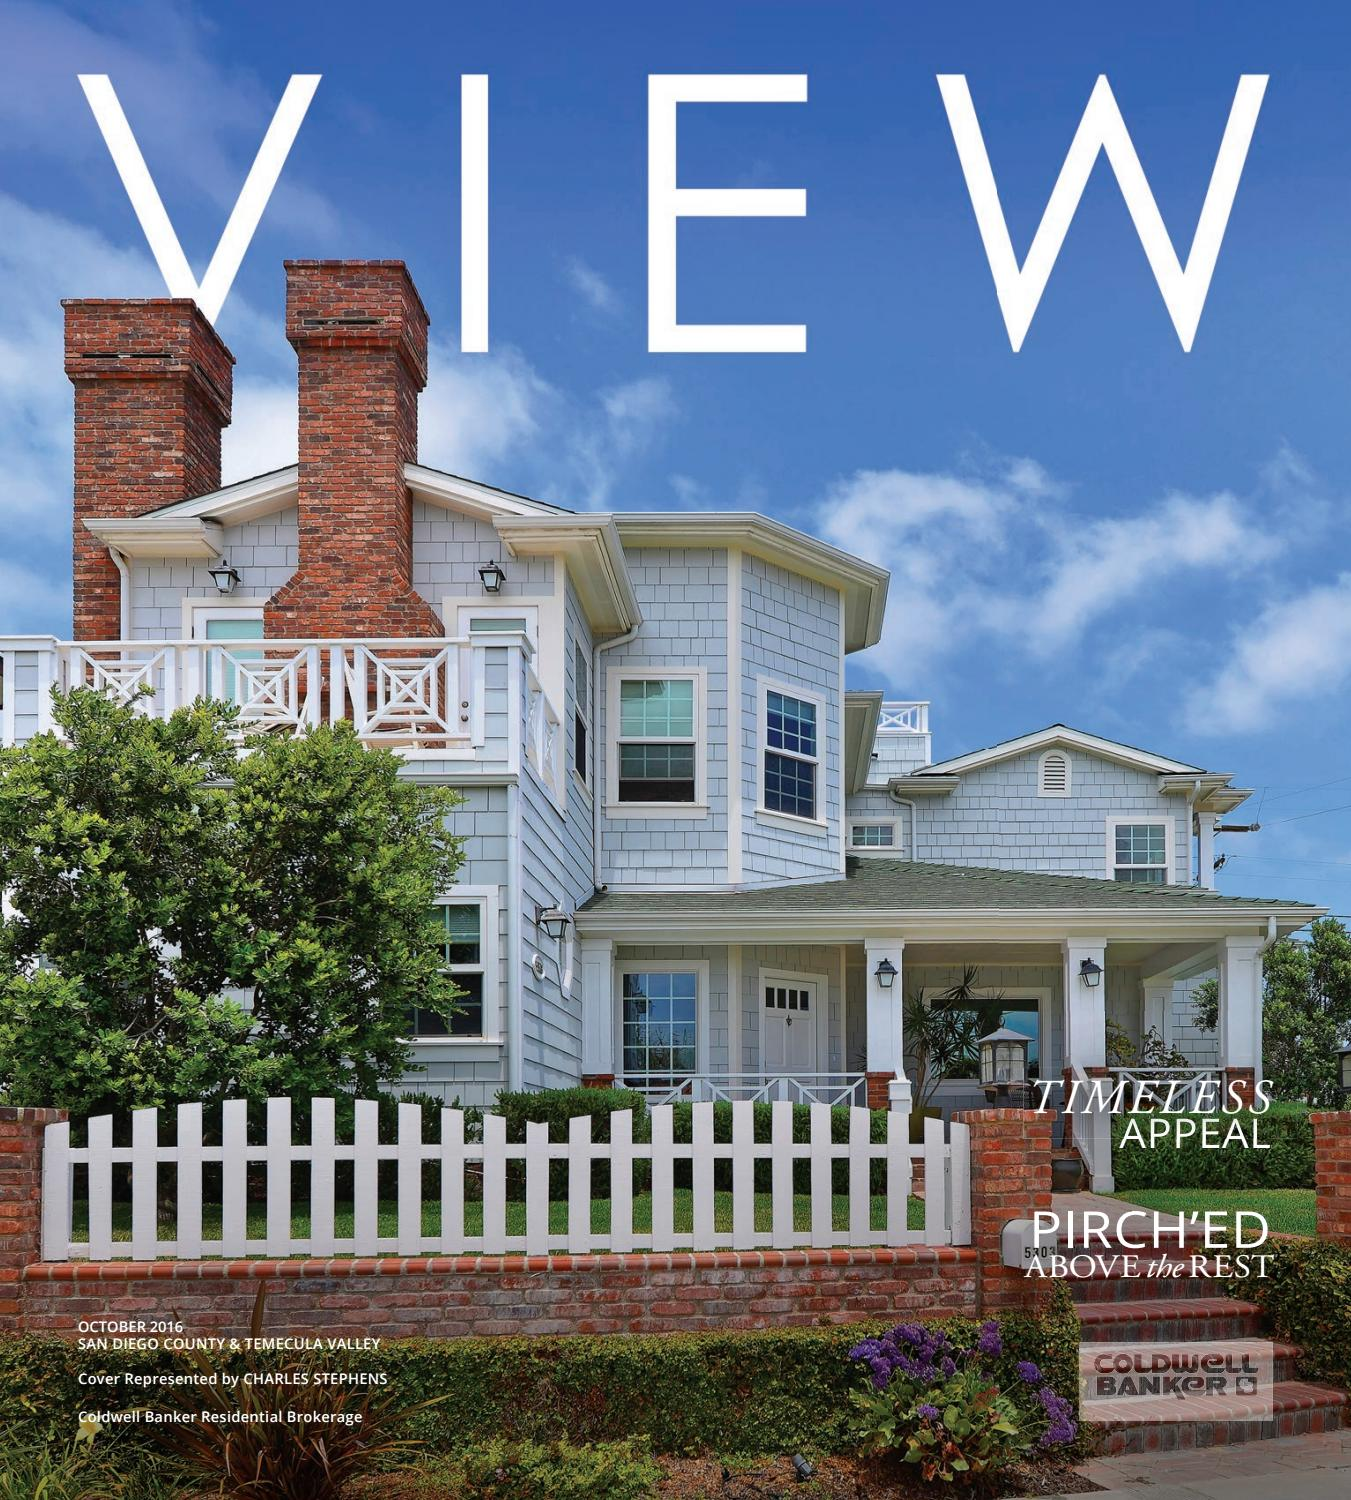 View San Diego Temecula Valley by Coldwell Banker issuu